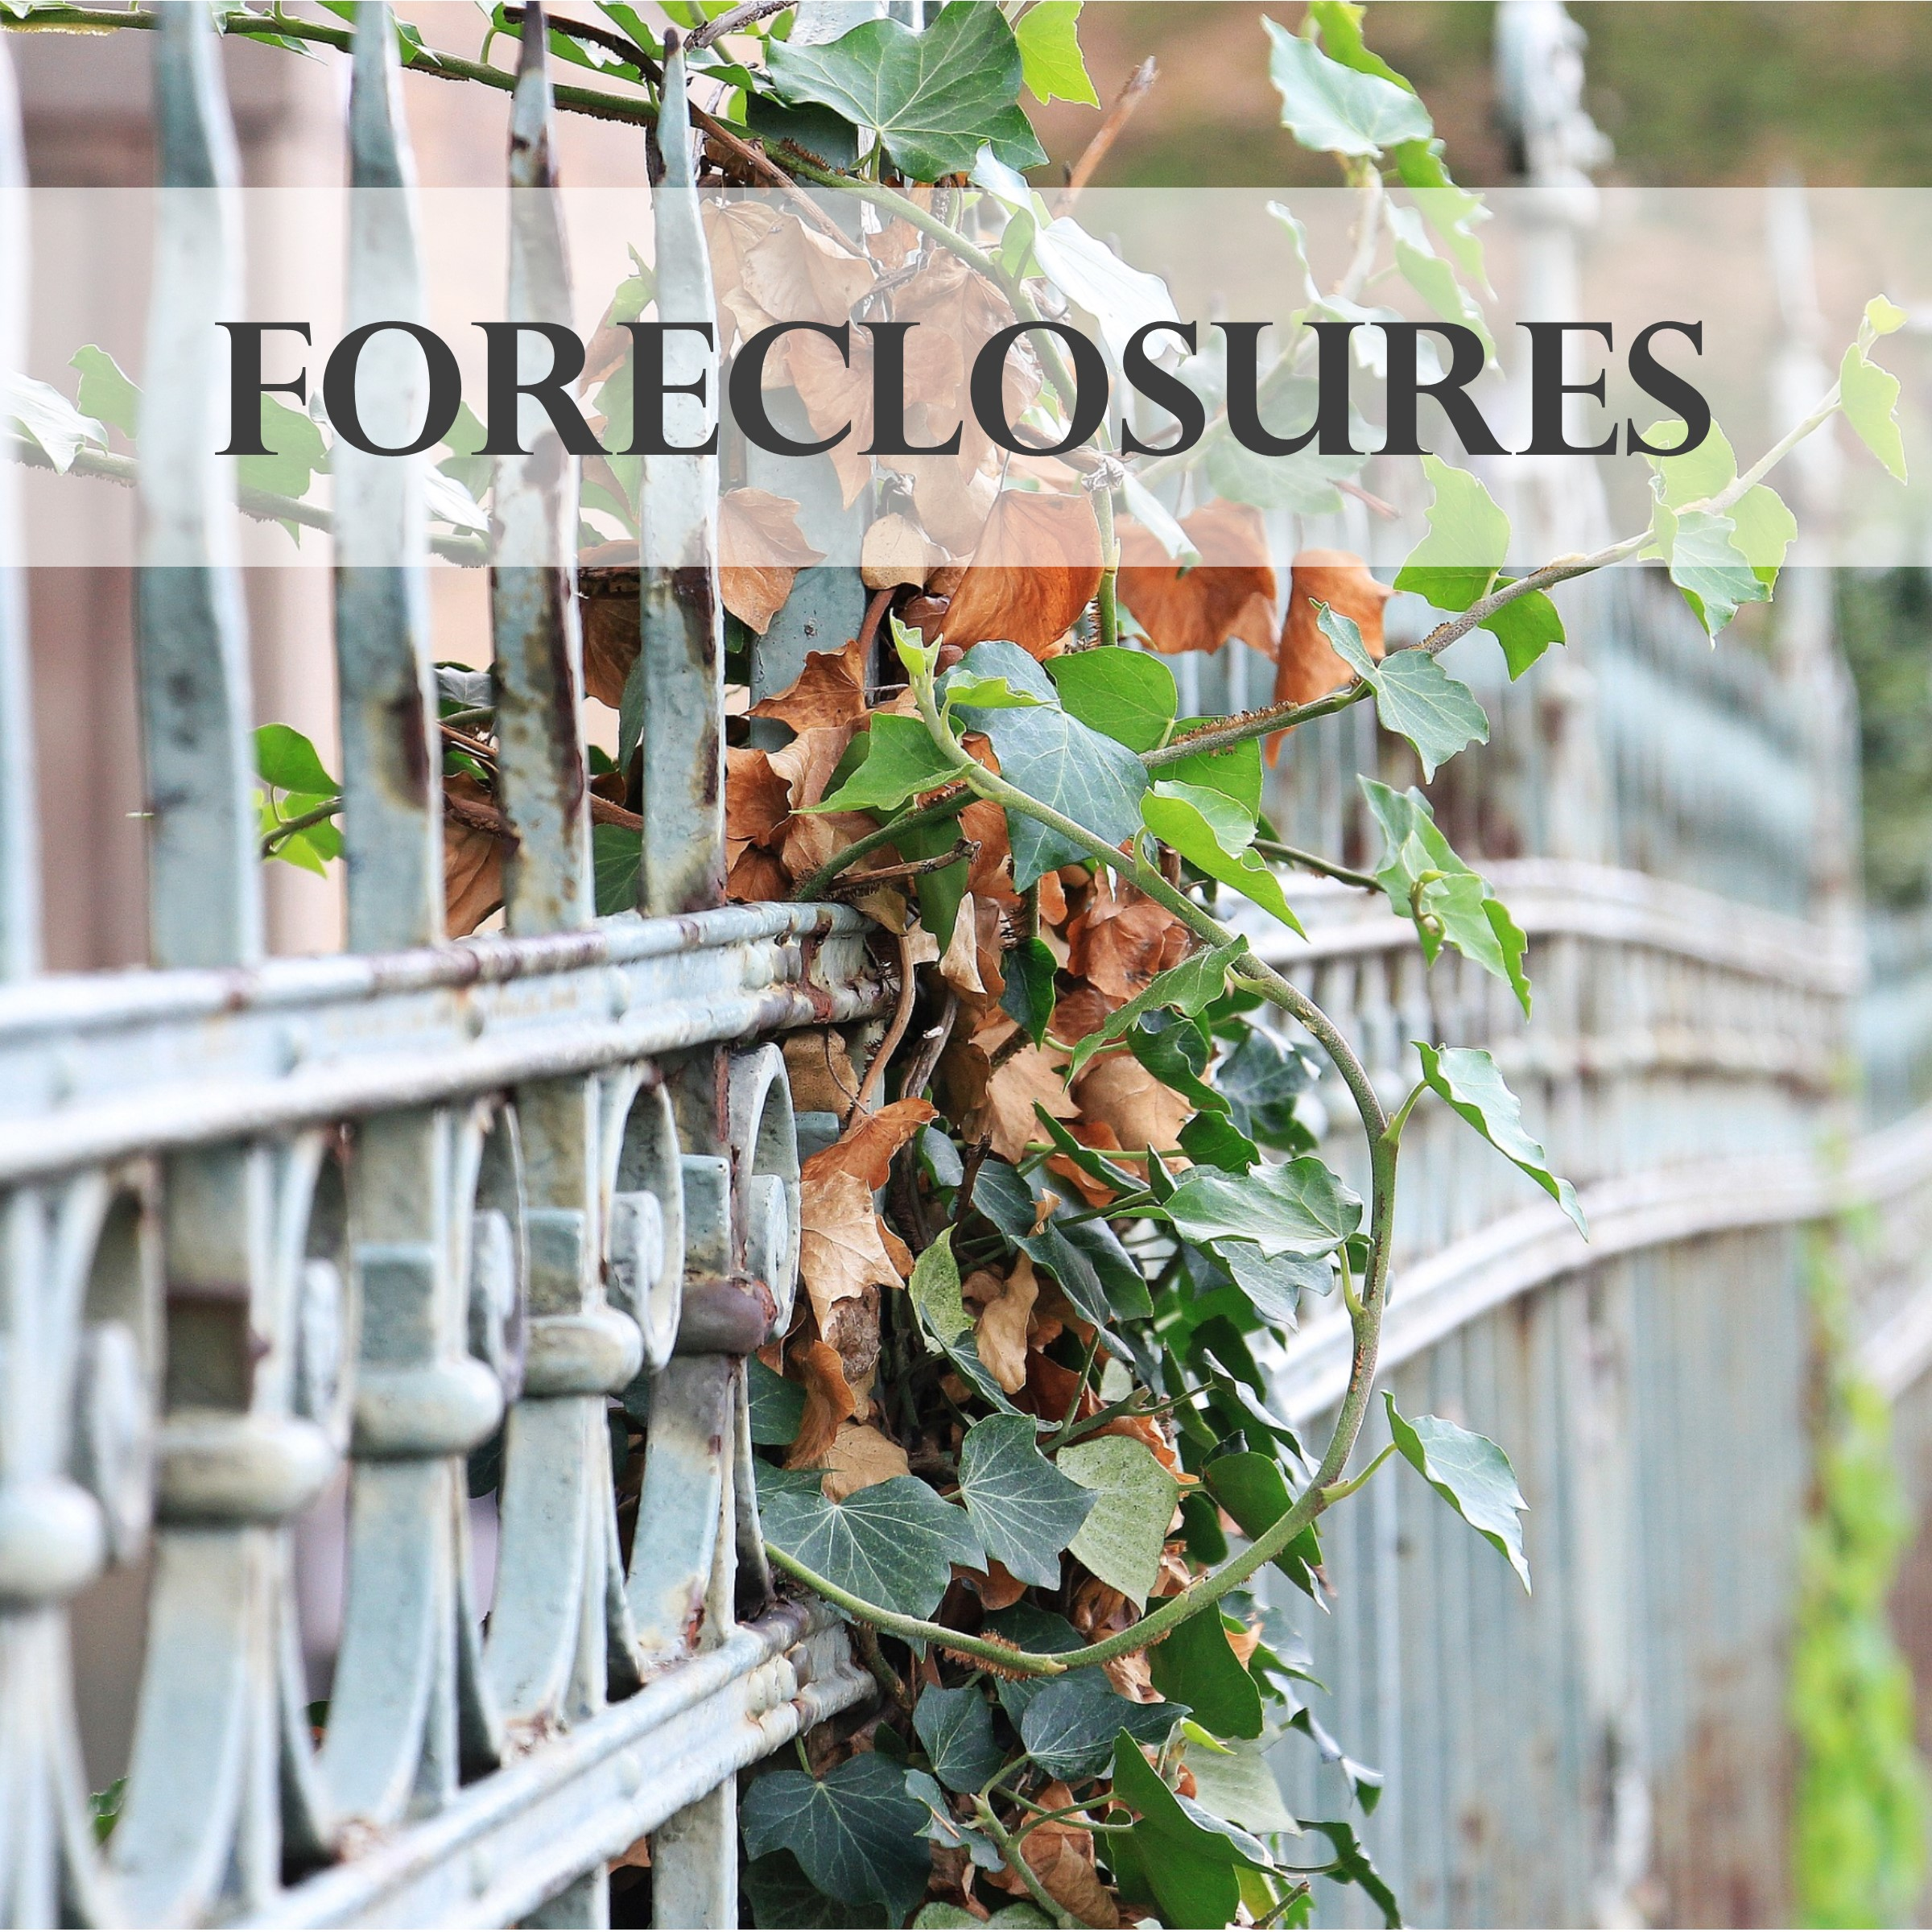 Maine Foreclosures - Fontaine Family - The Real Estate Leader - real estate leader, maine homes for sale, maine real estate, mai